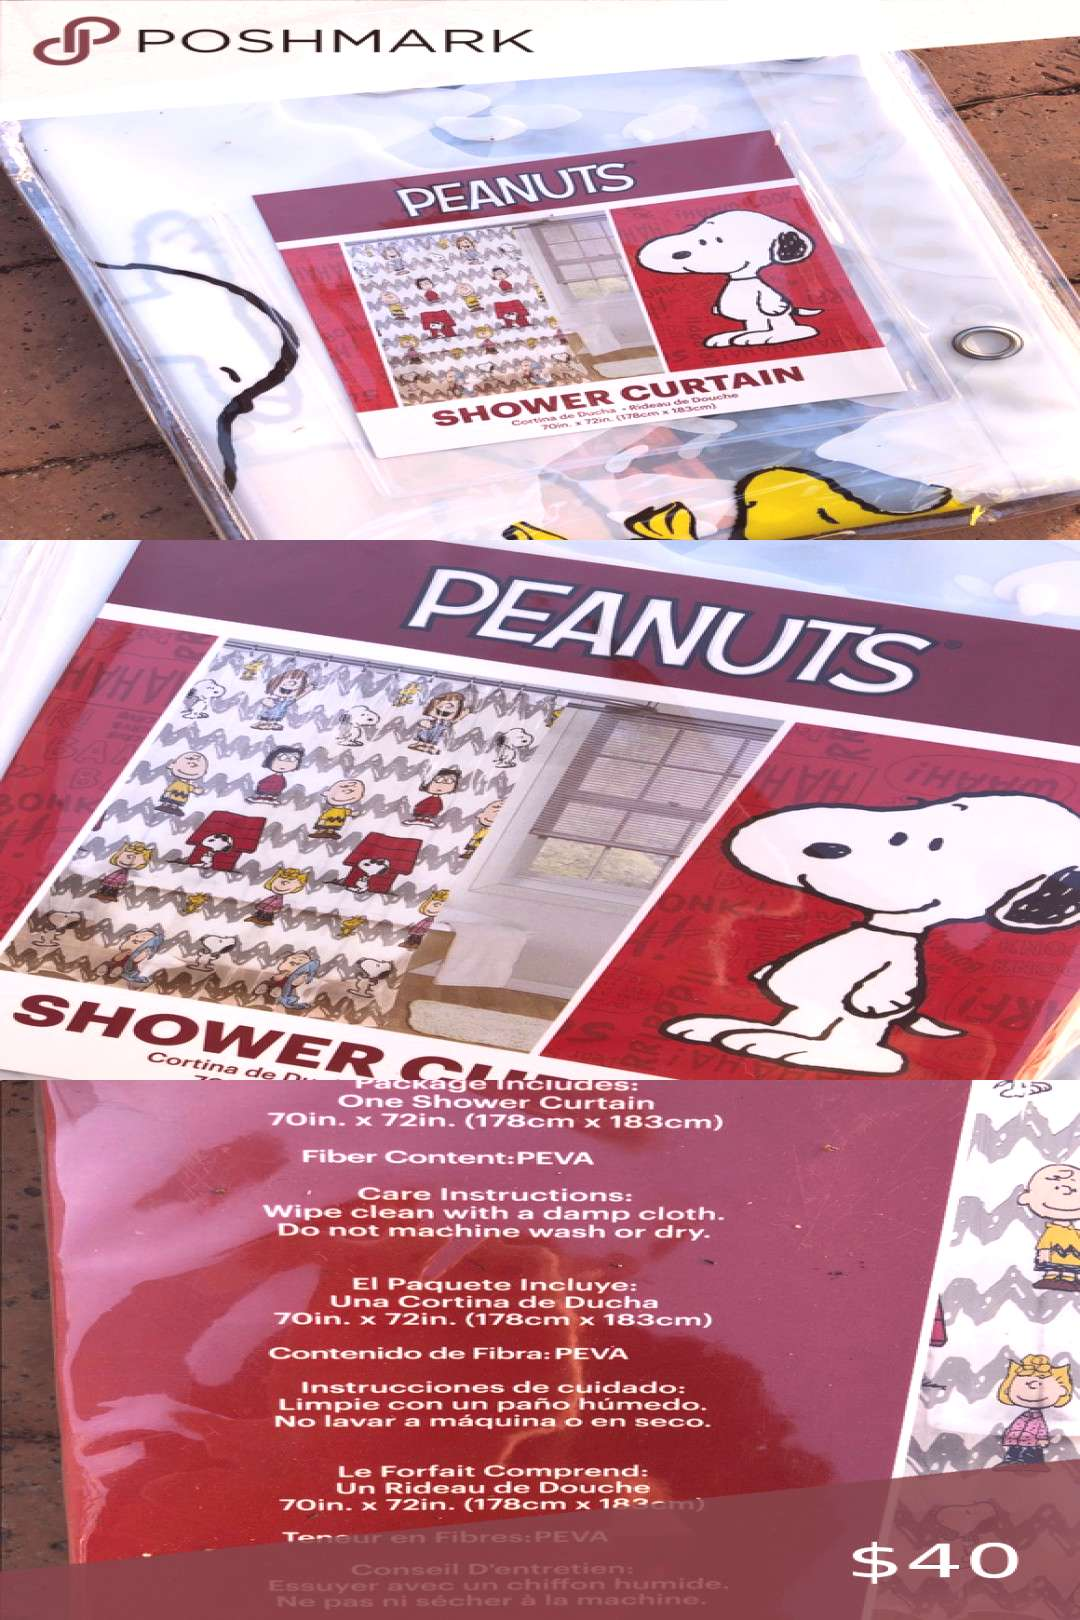 Spotted while shopping on Poshmark NWT Peanuts shower curtain Snoopy shower curtain!